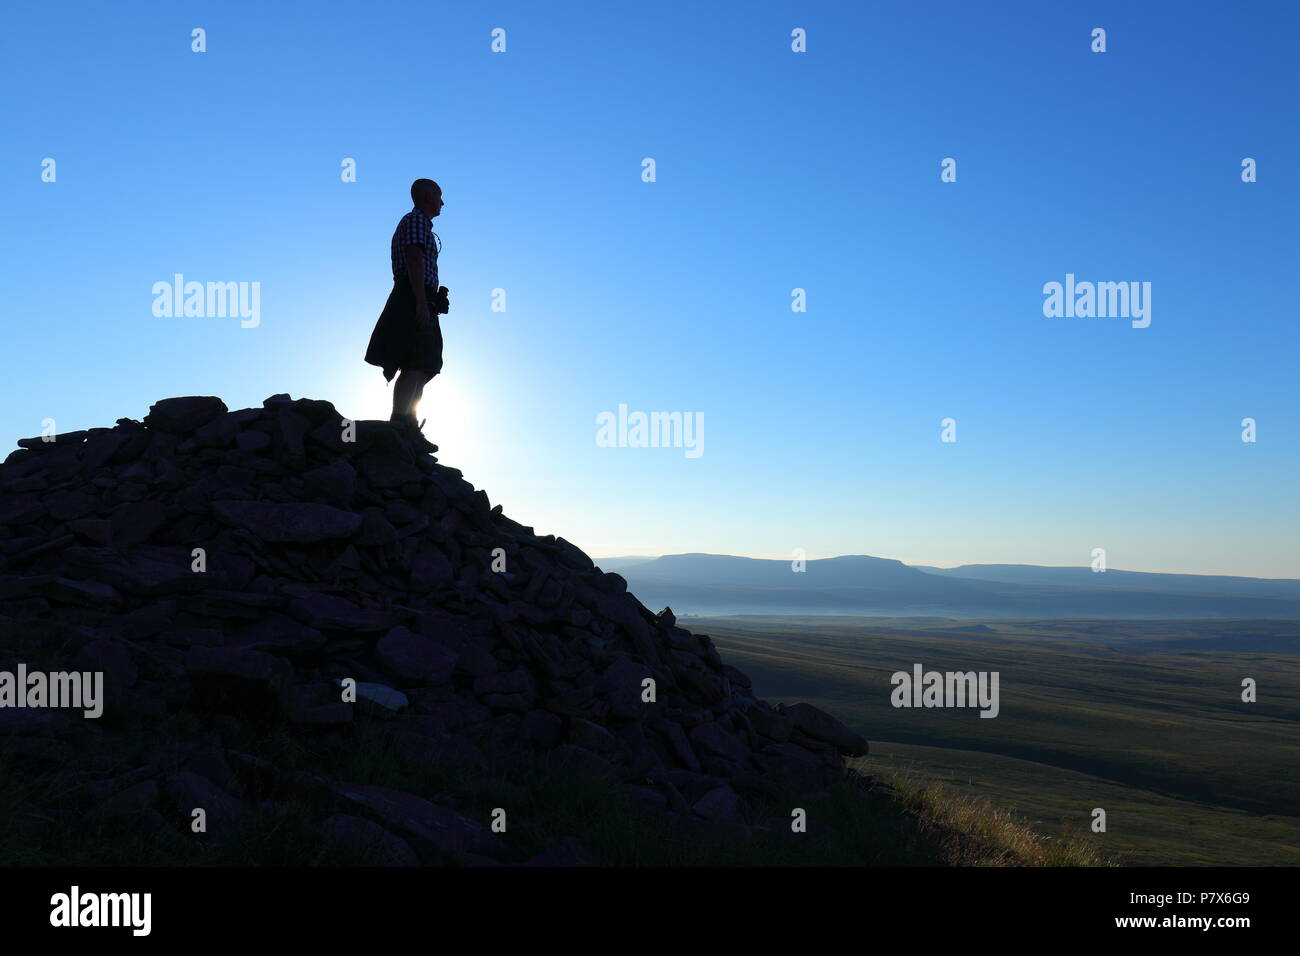 Myself taking a selfie , during a walk up Ingleborough Mountain which is part of the three peaks challenge in the Yorkshire Dales National Park. - Stock Image